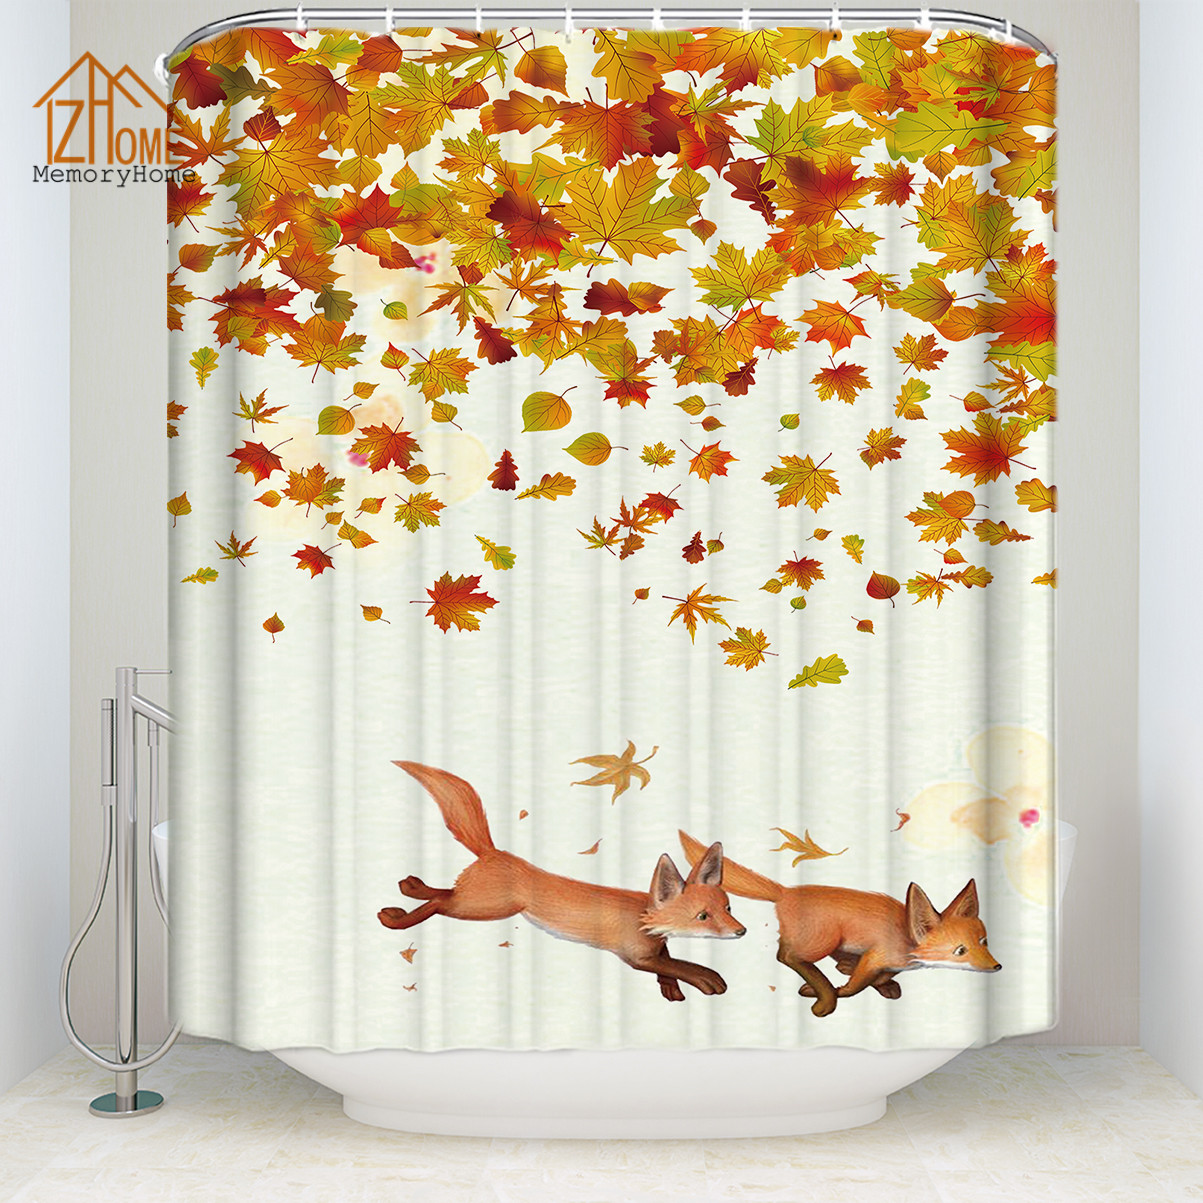 Buy Shower Curtain Fox And Get Free Shipping On AliExpress